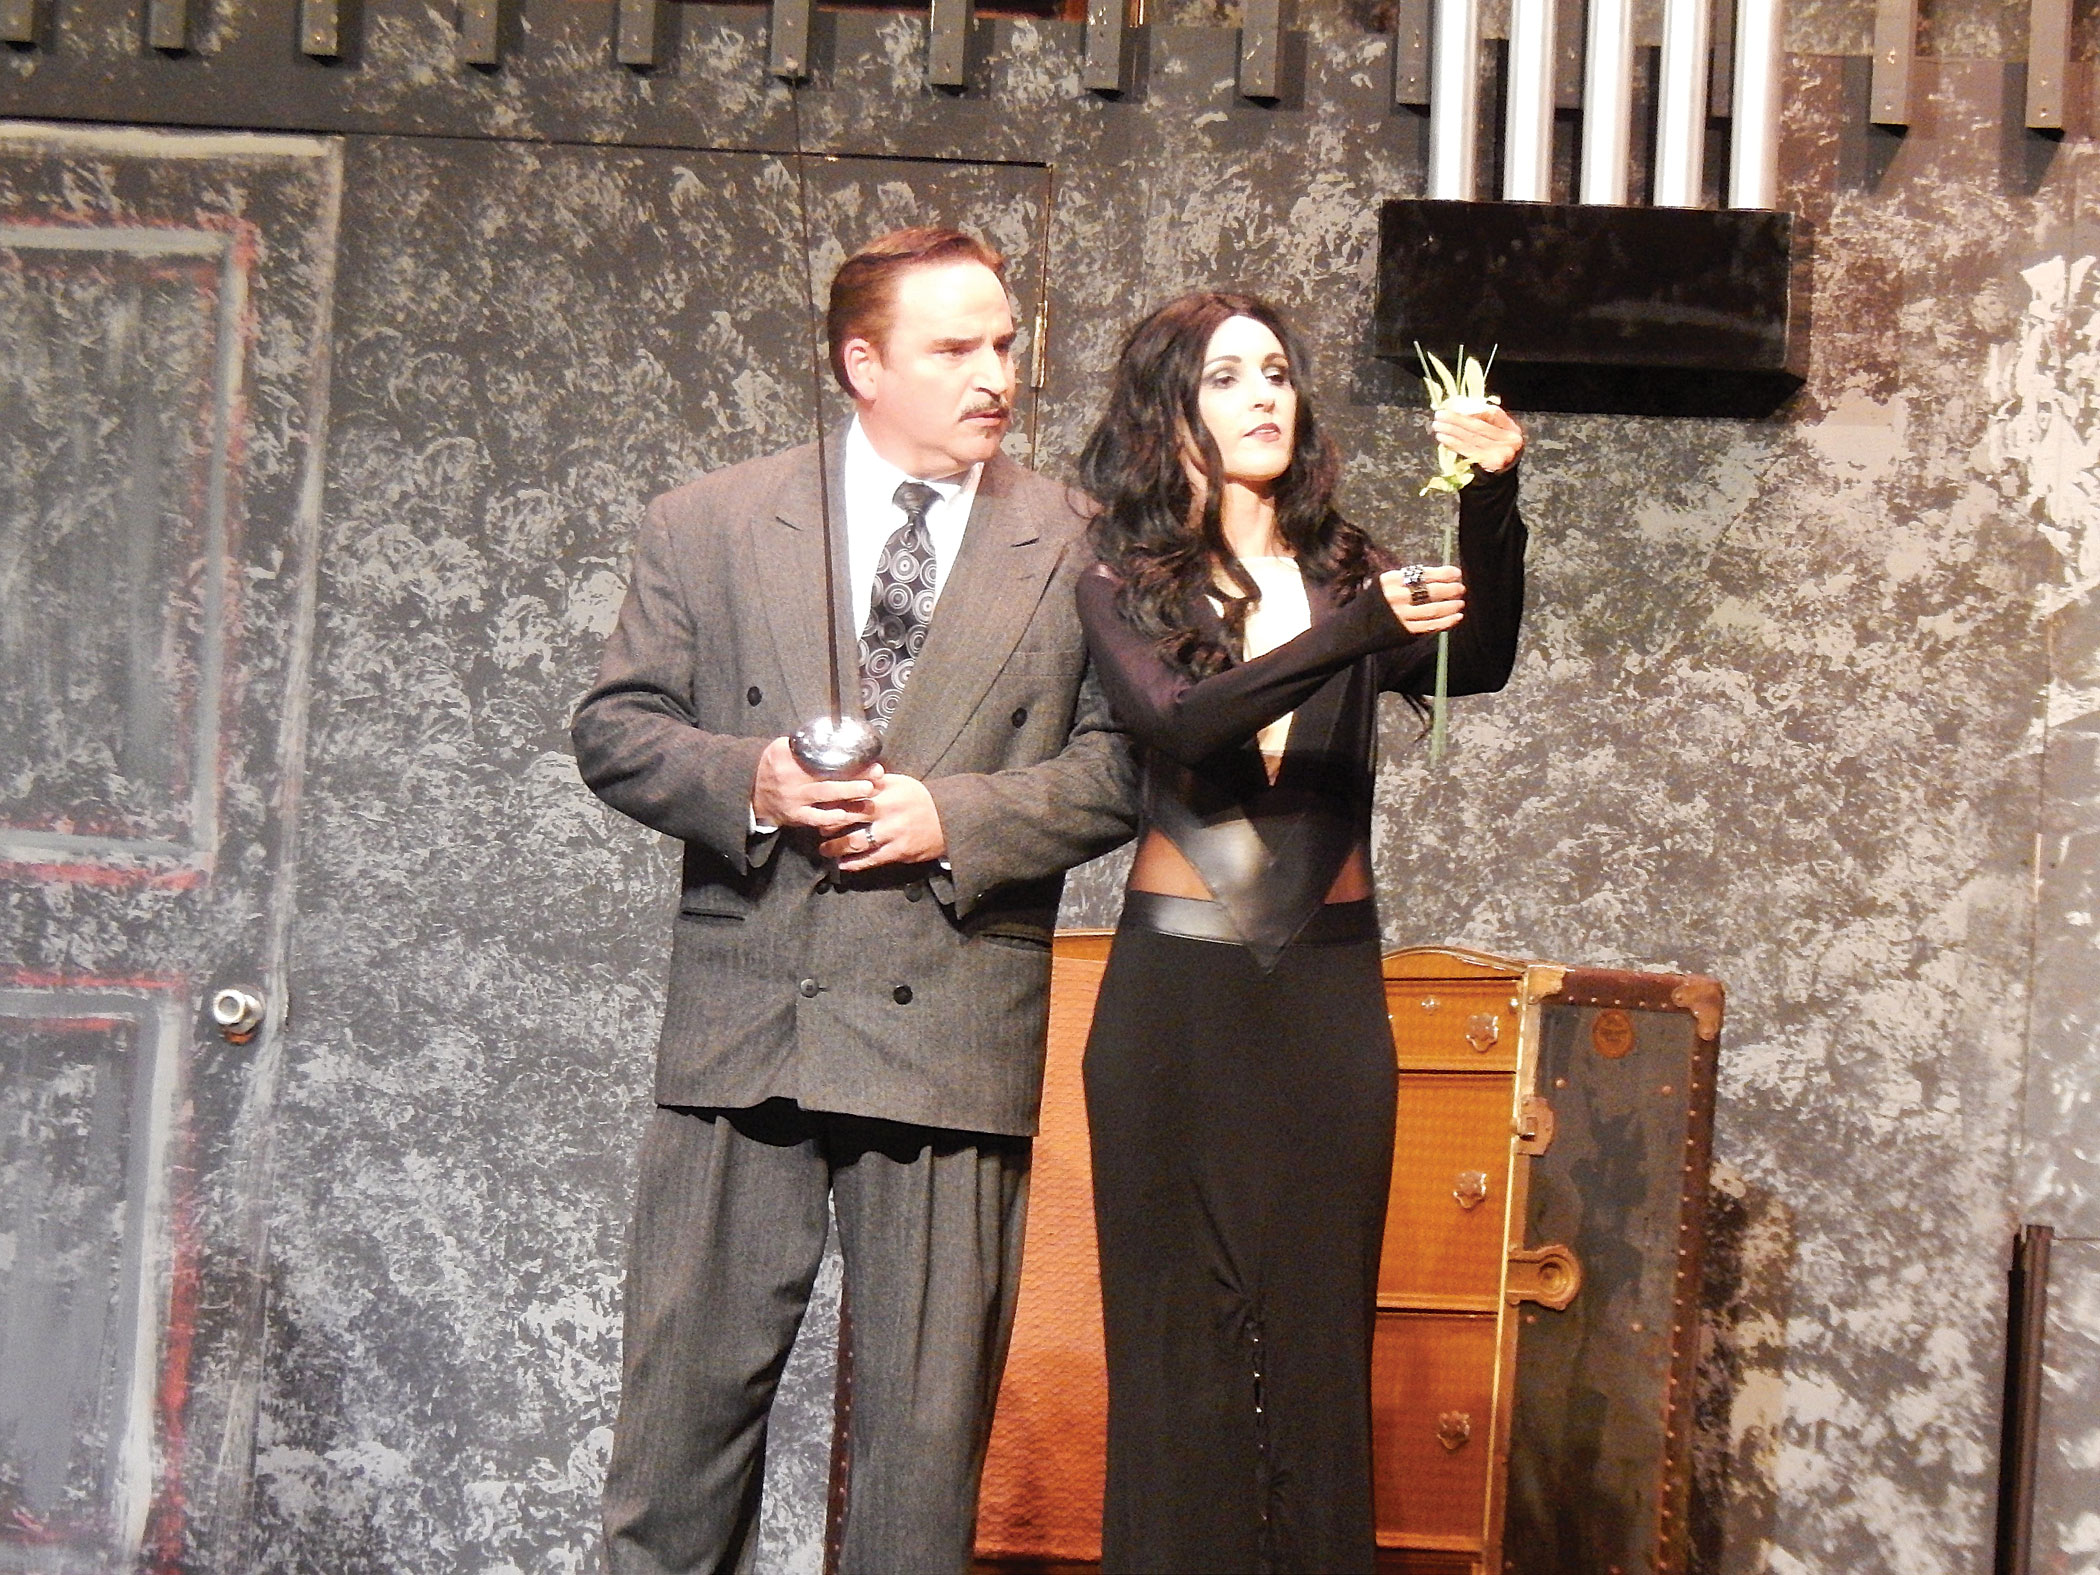 Pay a call on The Addams Family at The Ritz   News